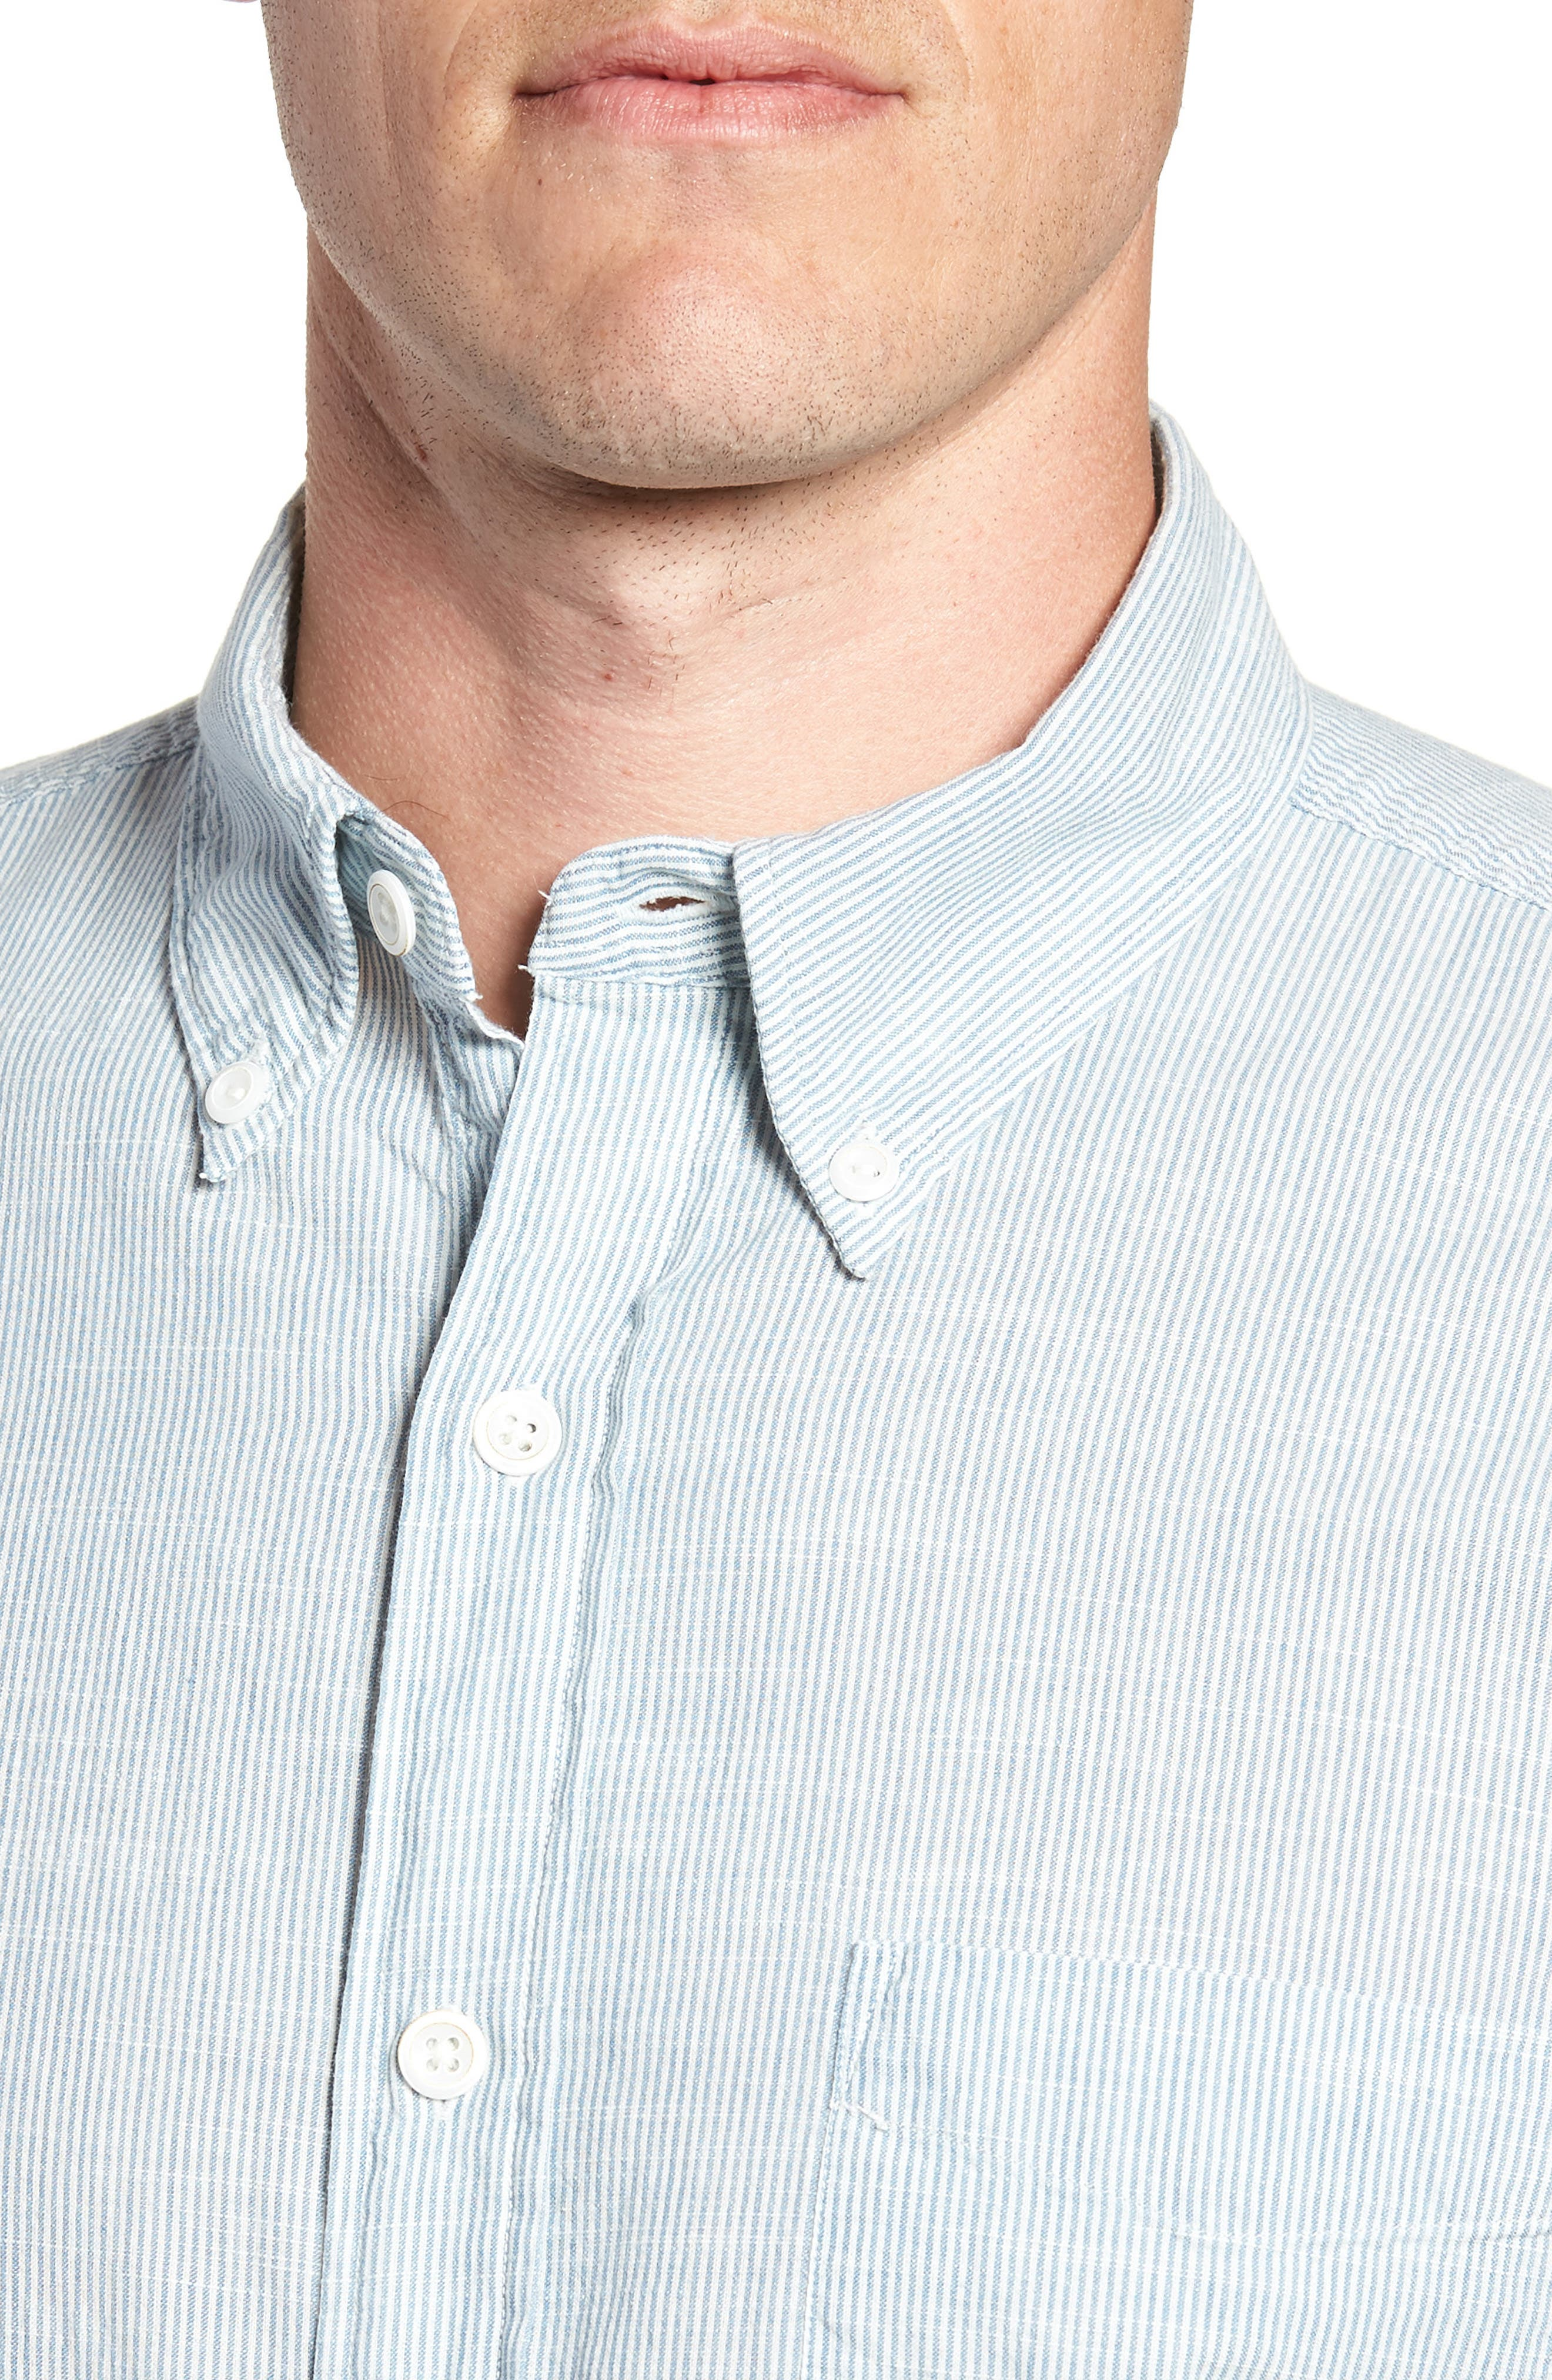 Pacific Pinstripe Sport Shirt,                             Alternate thumbnail 4, color,                             100